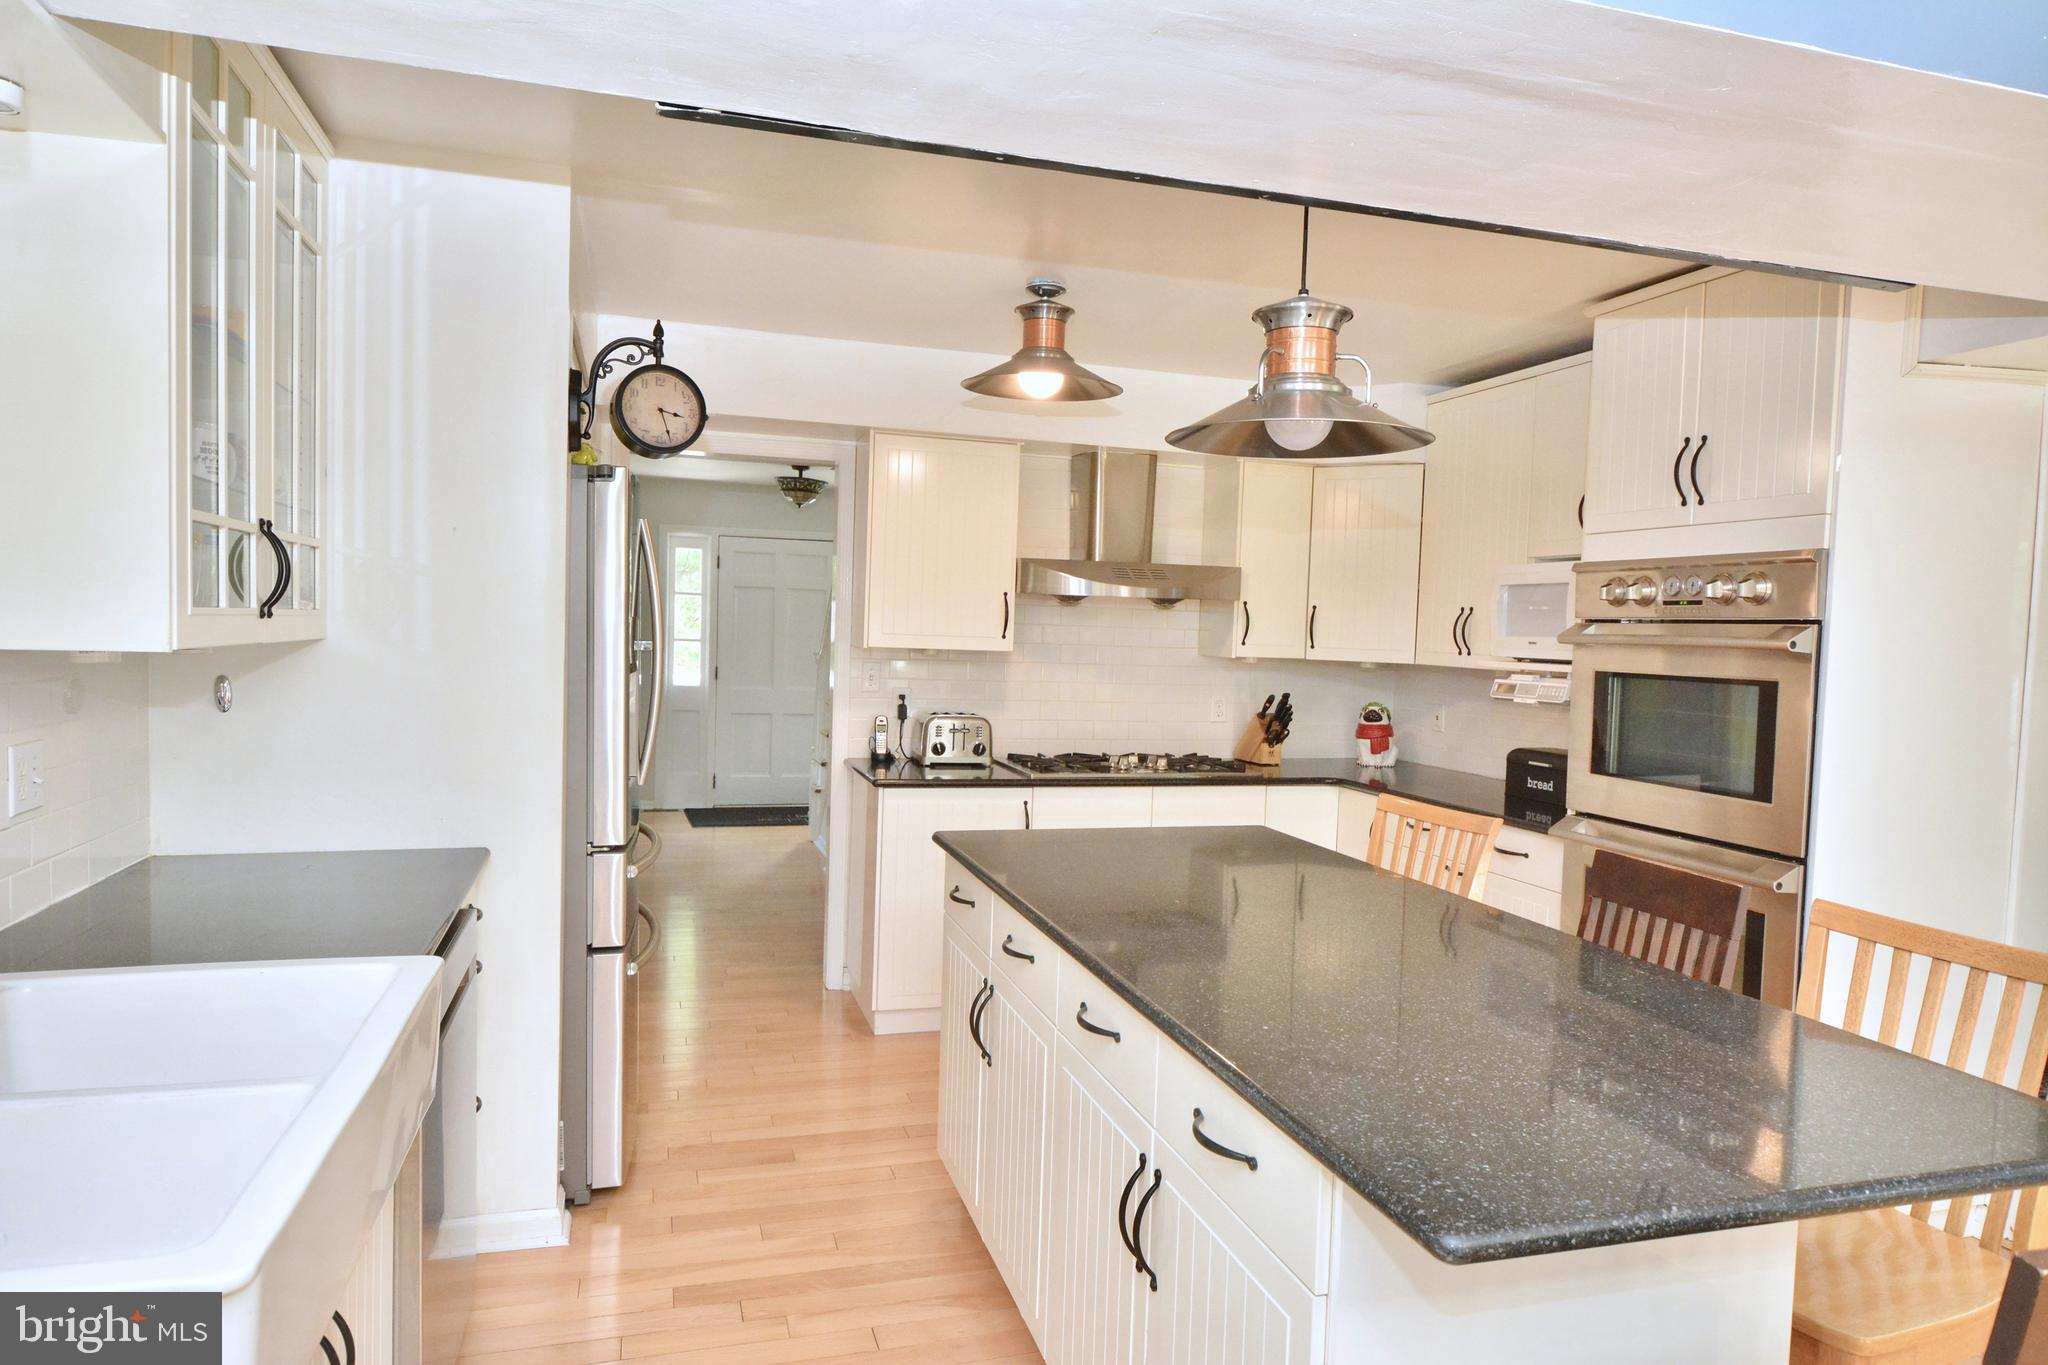 Stainless steel appliances and white cabinets..